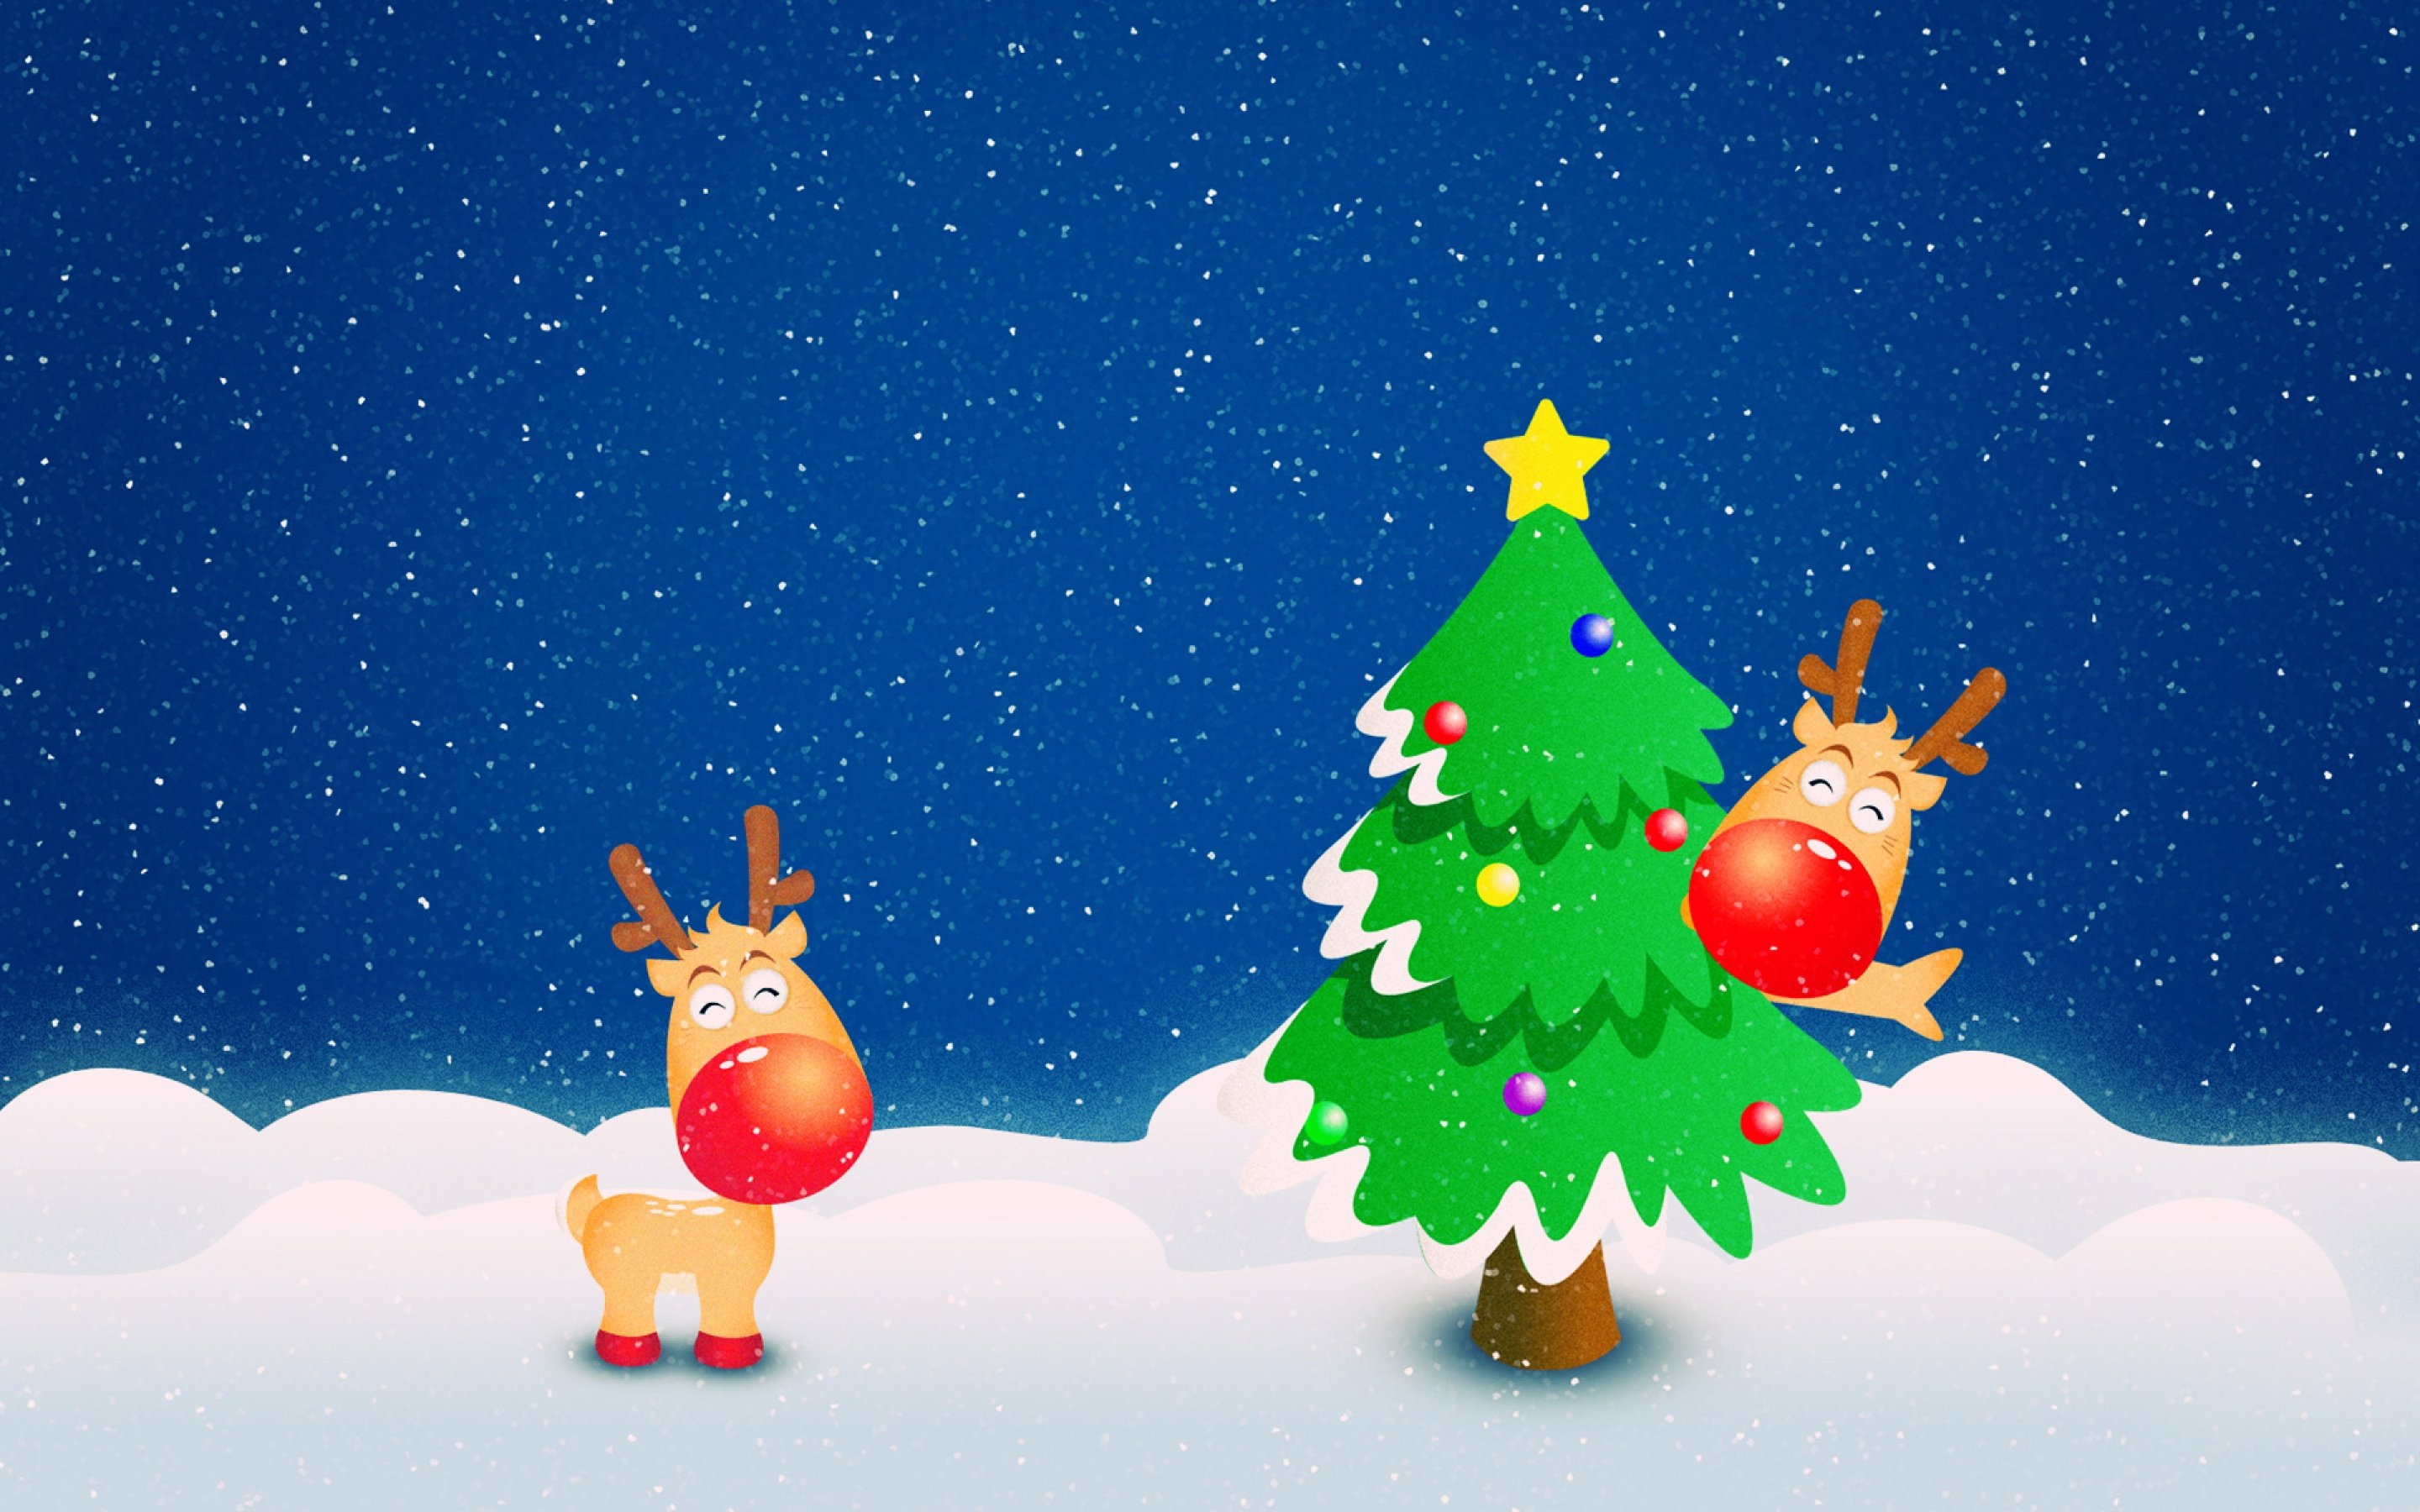 Cute Christmas Wallpapers: Download Cute Christmas Tree Wallpaper Gallery